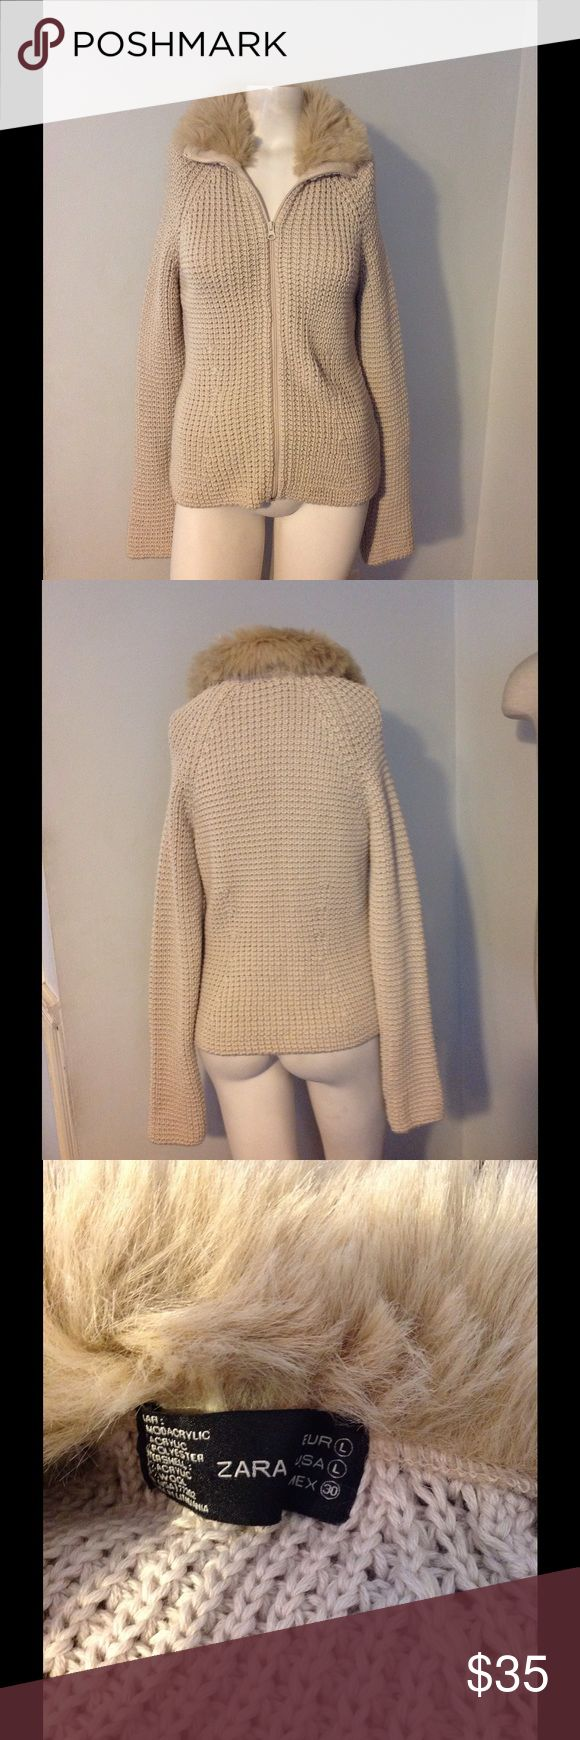 SALEZara Faux Fur Collar Zip Up Sweater L Very pretty Zara sweater. Zip up Cardi made of 50/50 acrylic wool. Great condition. Thanksgiving Sale!  Zara Sweaters Cardigans